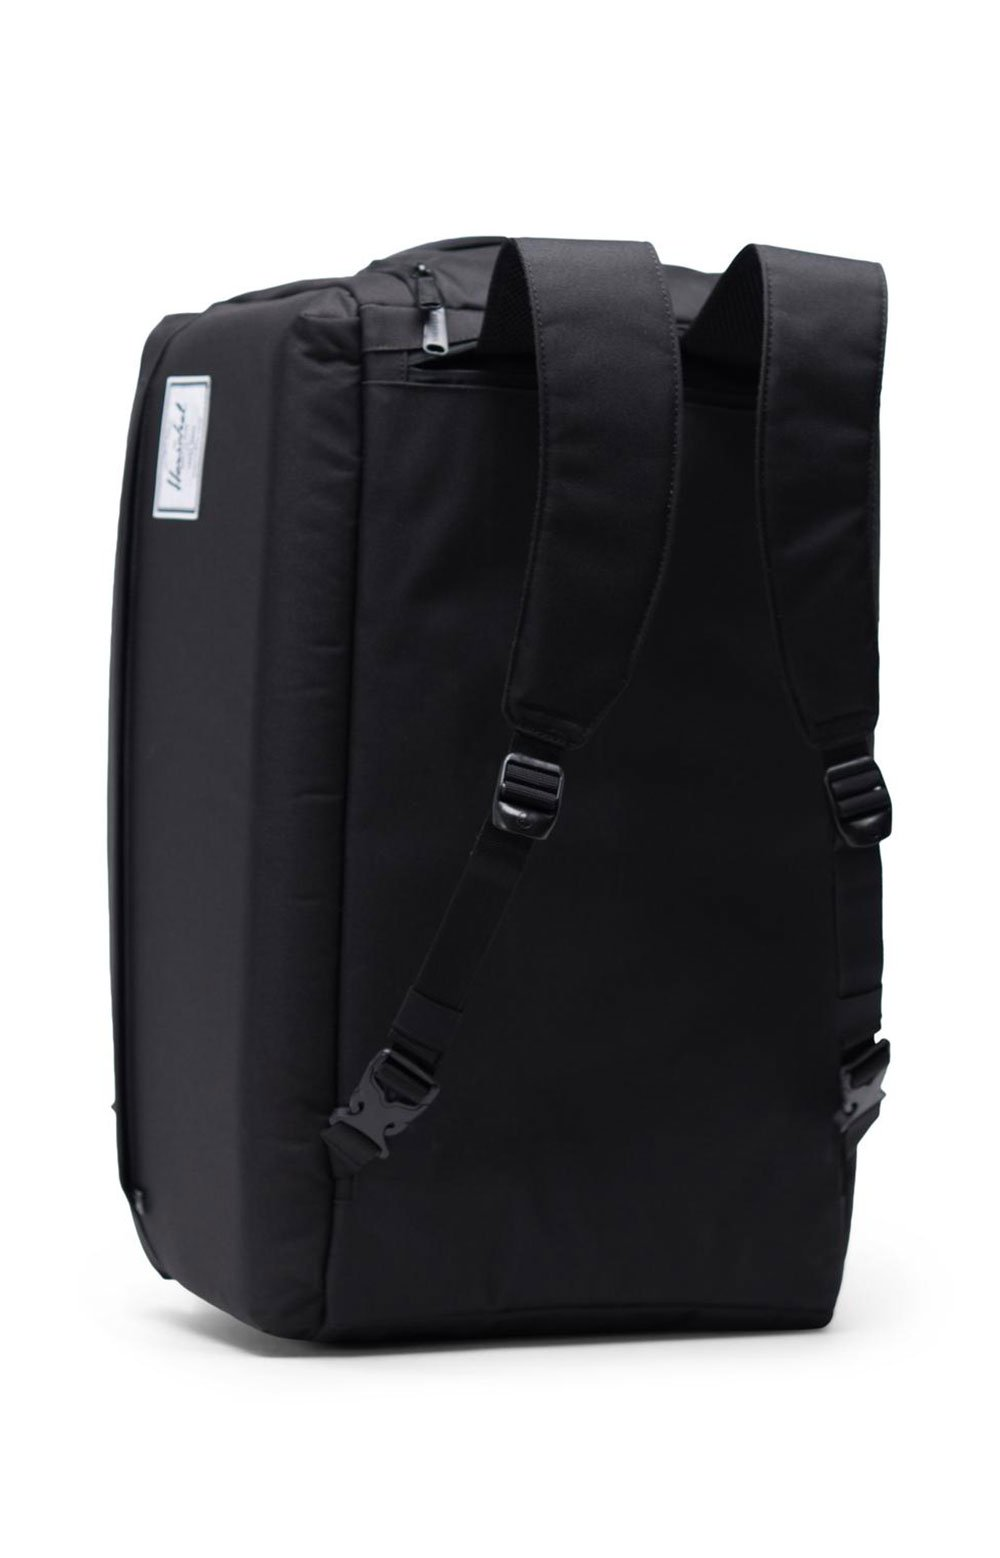 Outfitter Luggage 50L - Black 5